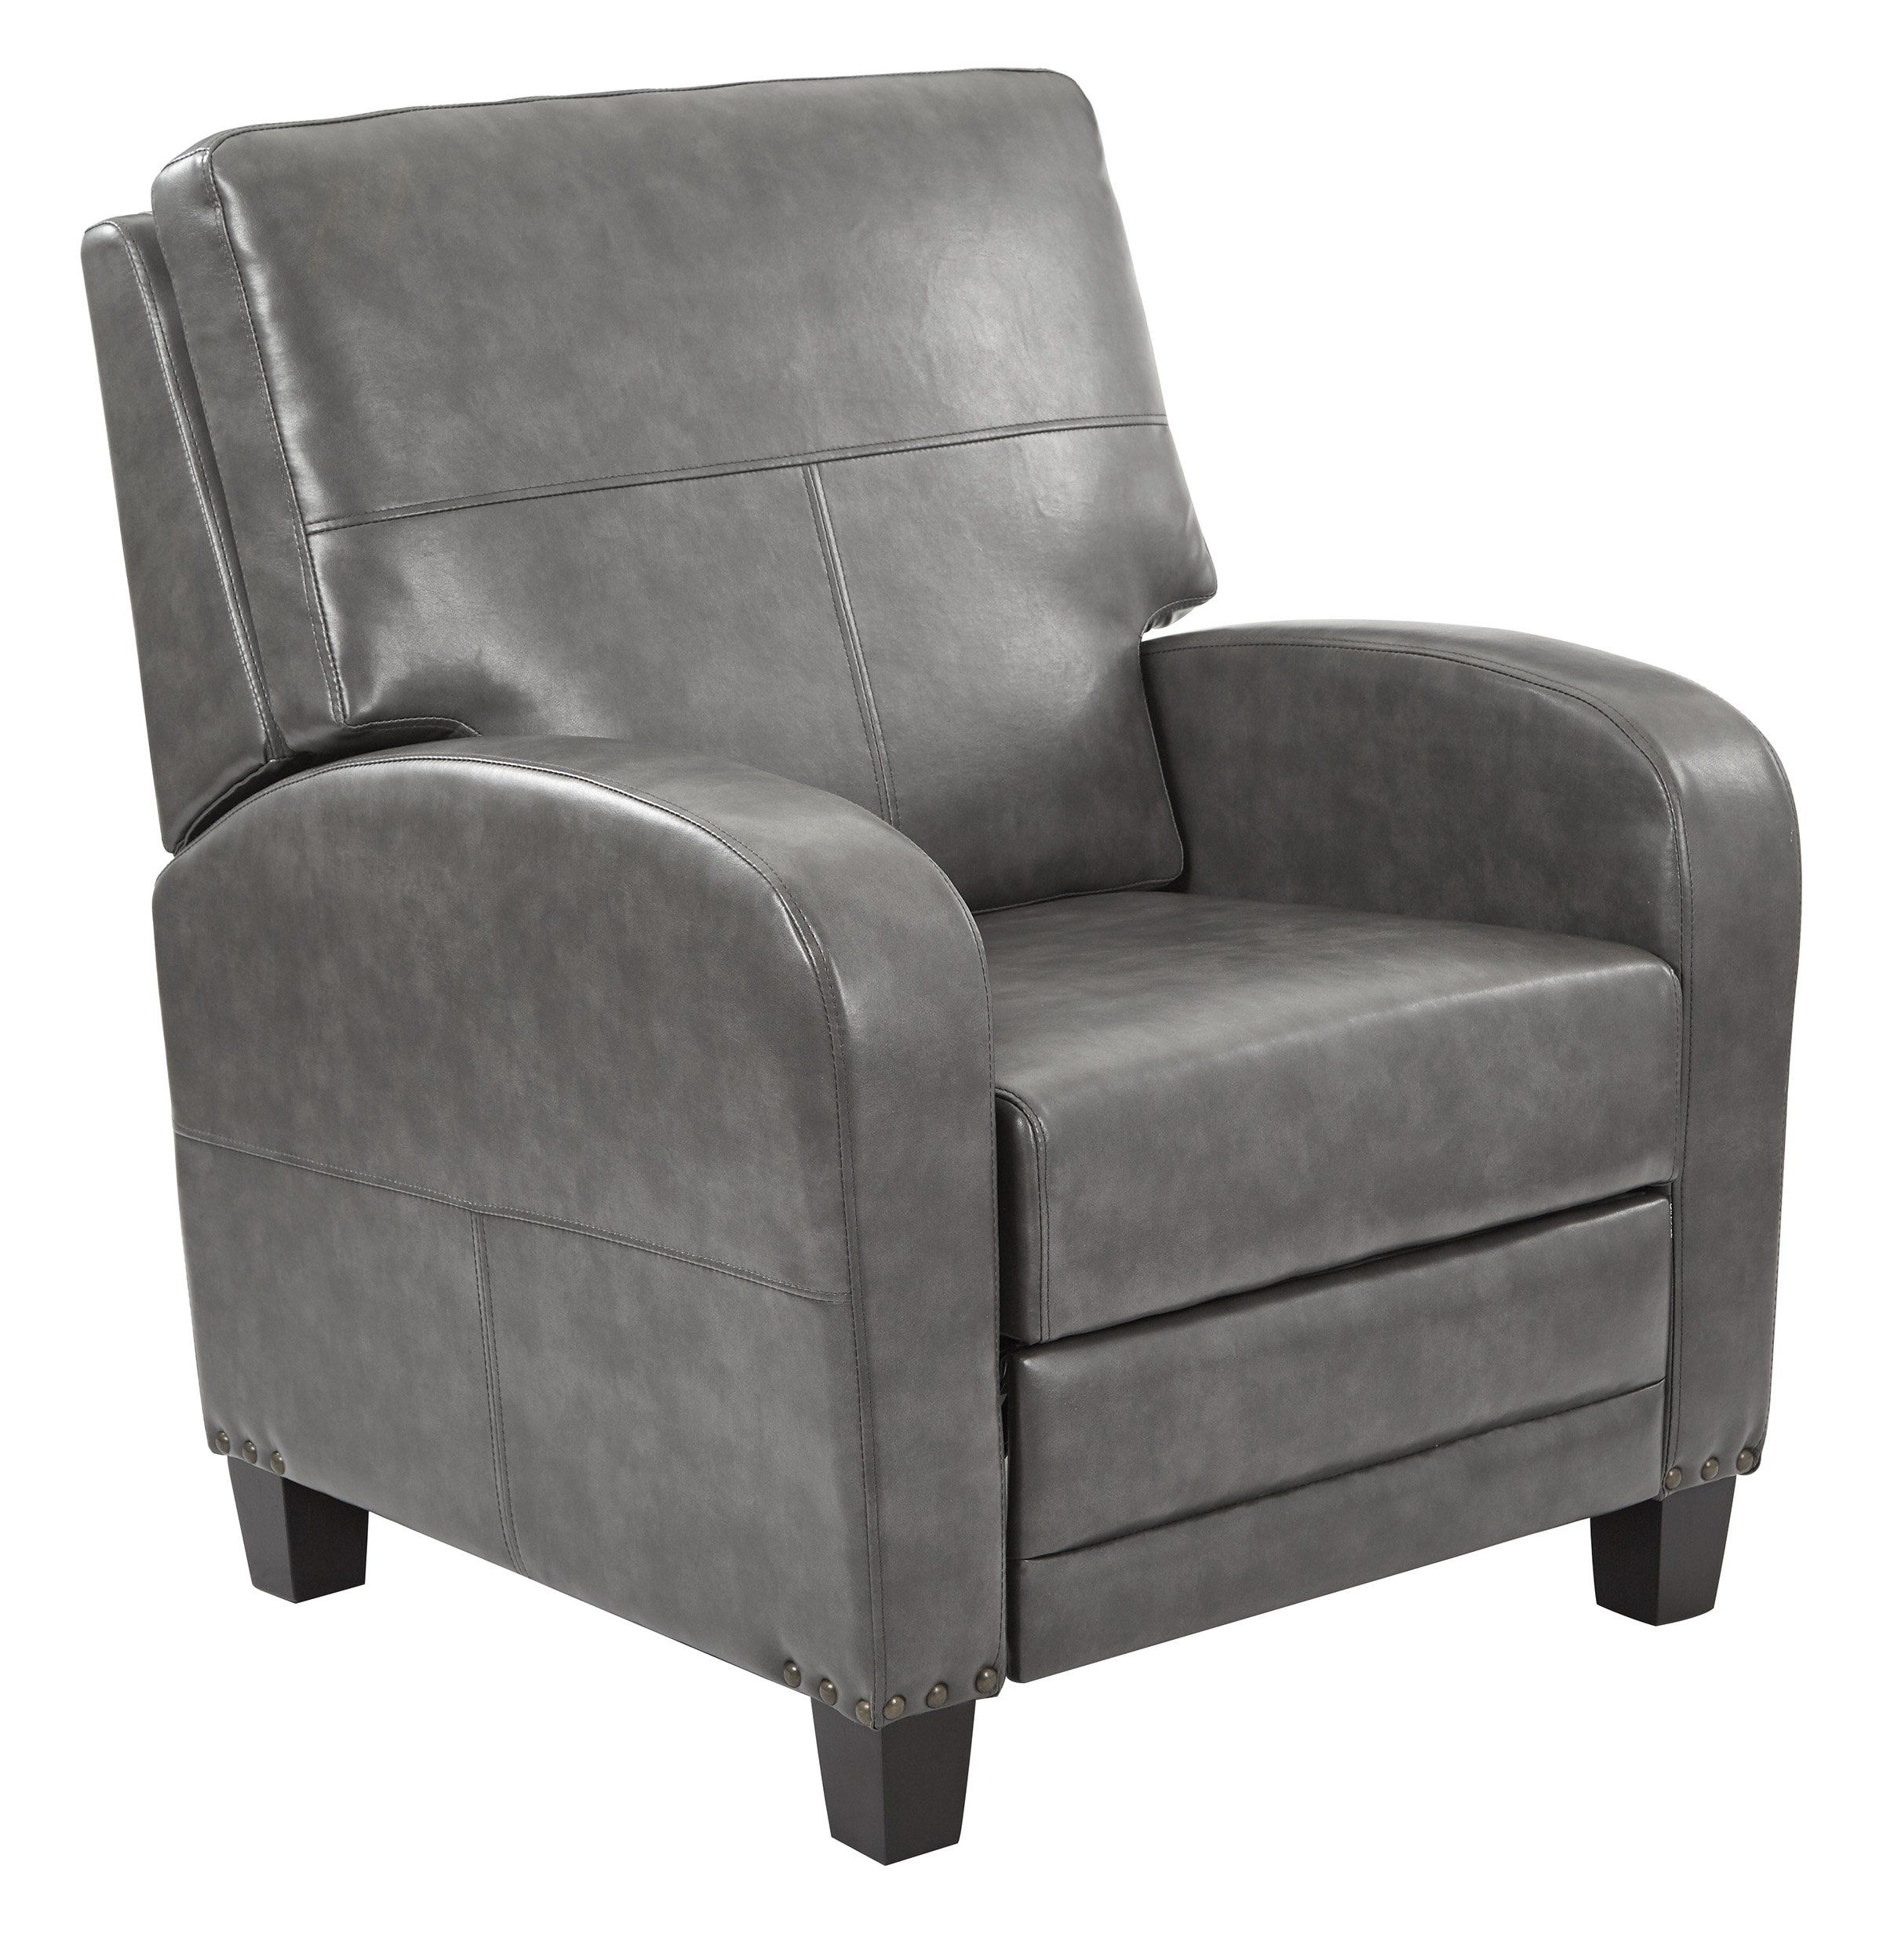 Office star pewter wellington recliner